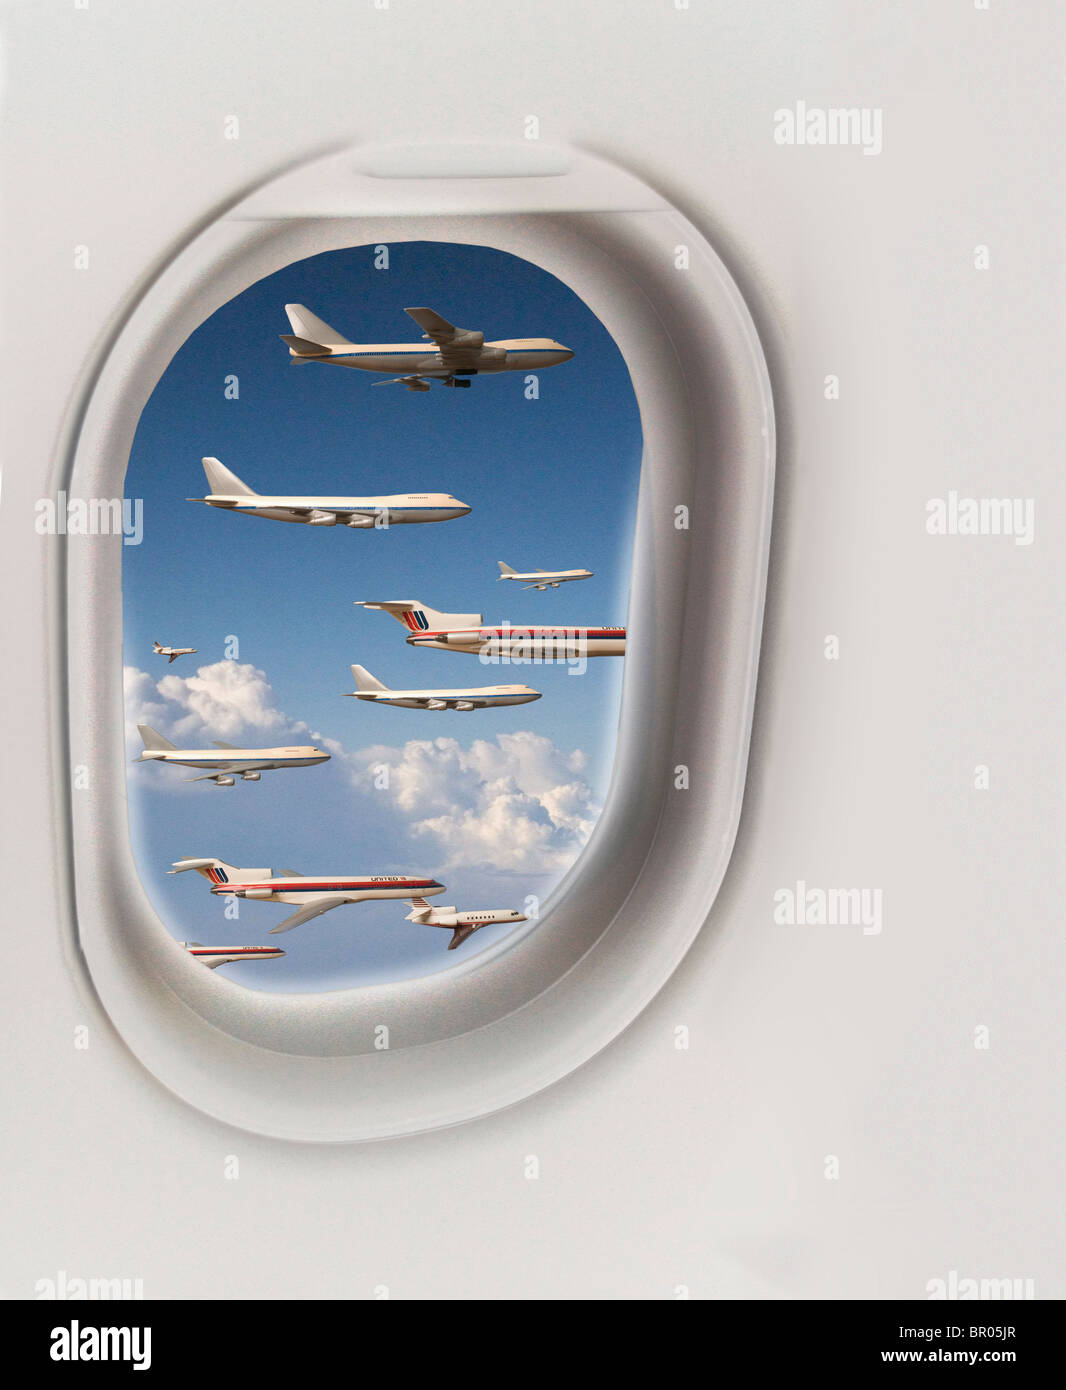 Many Airplanes viewed outside cabin window - Stock Image